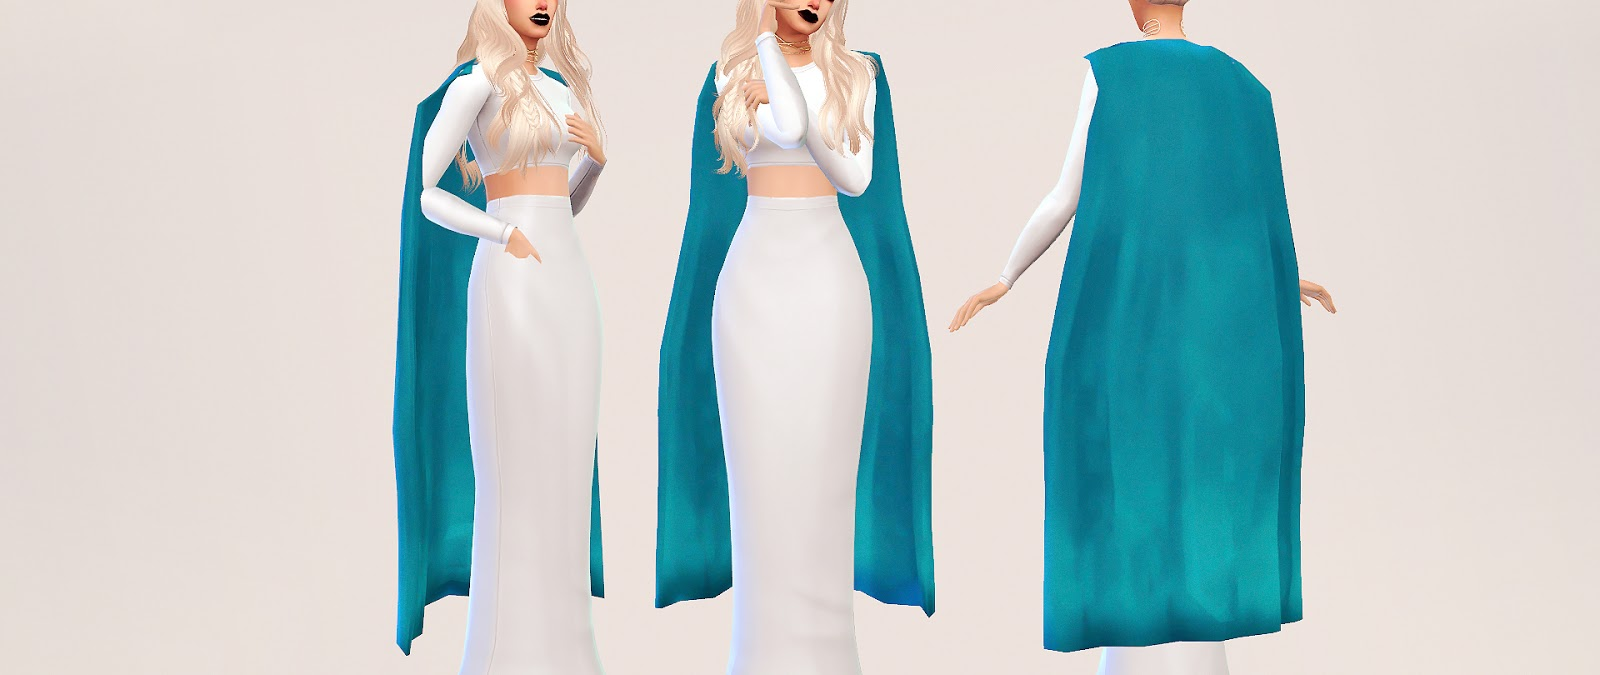 Sims 4 mods disabled dating 1